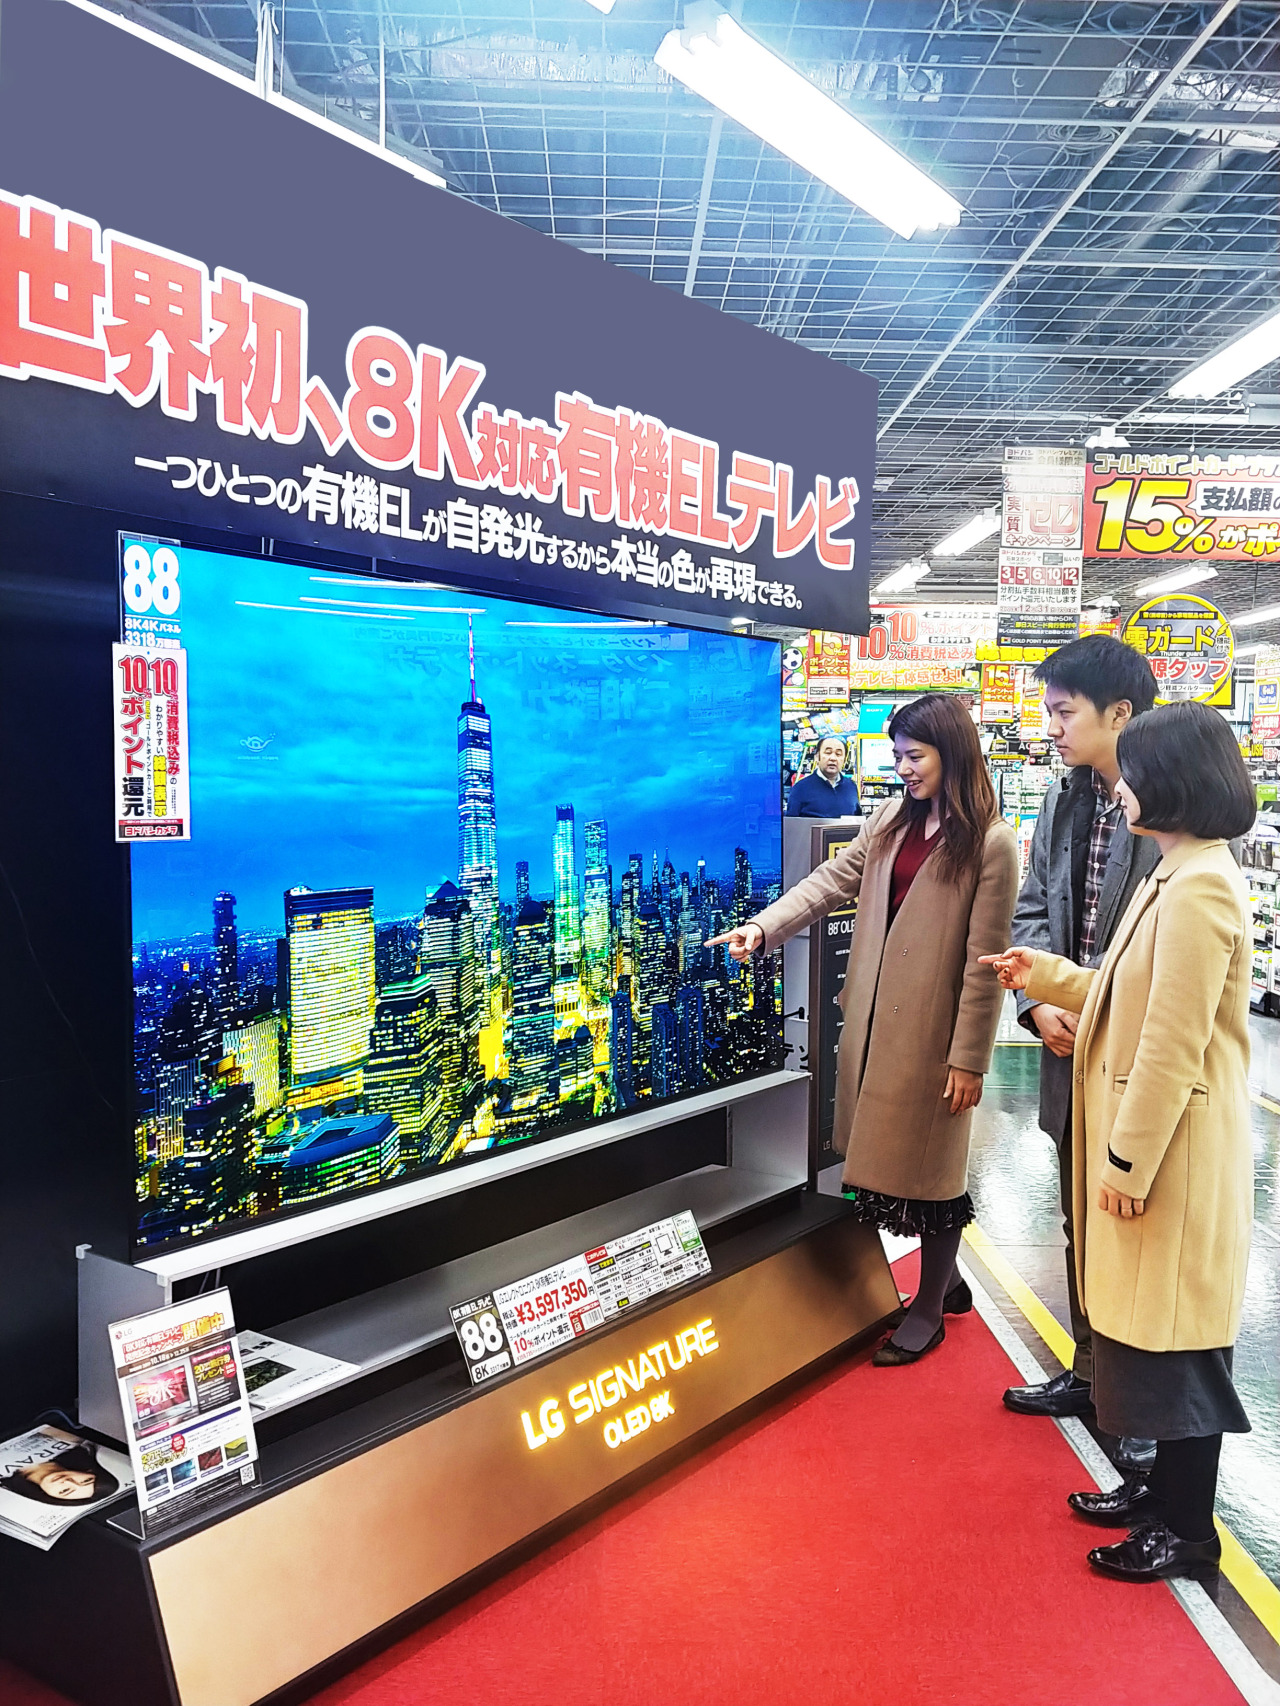 LG sells 8K OLED TVs in Japan, an attempt to compete with Sony is leading - VnReview